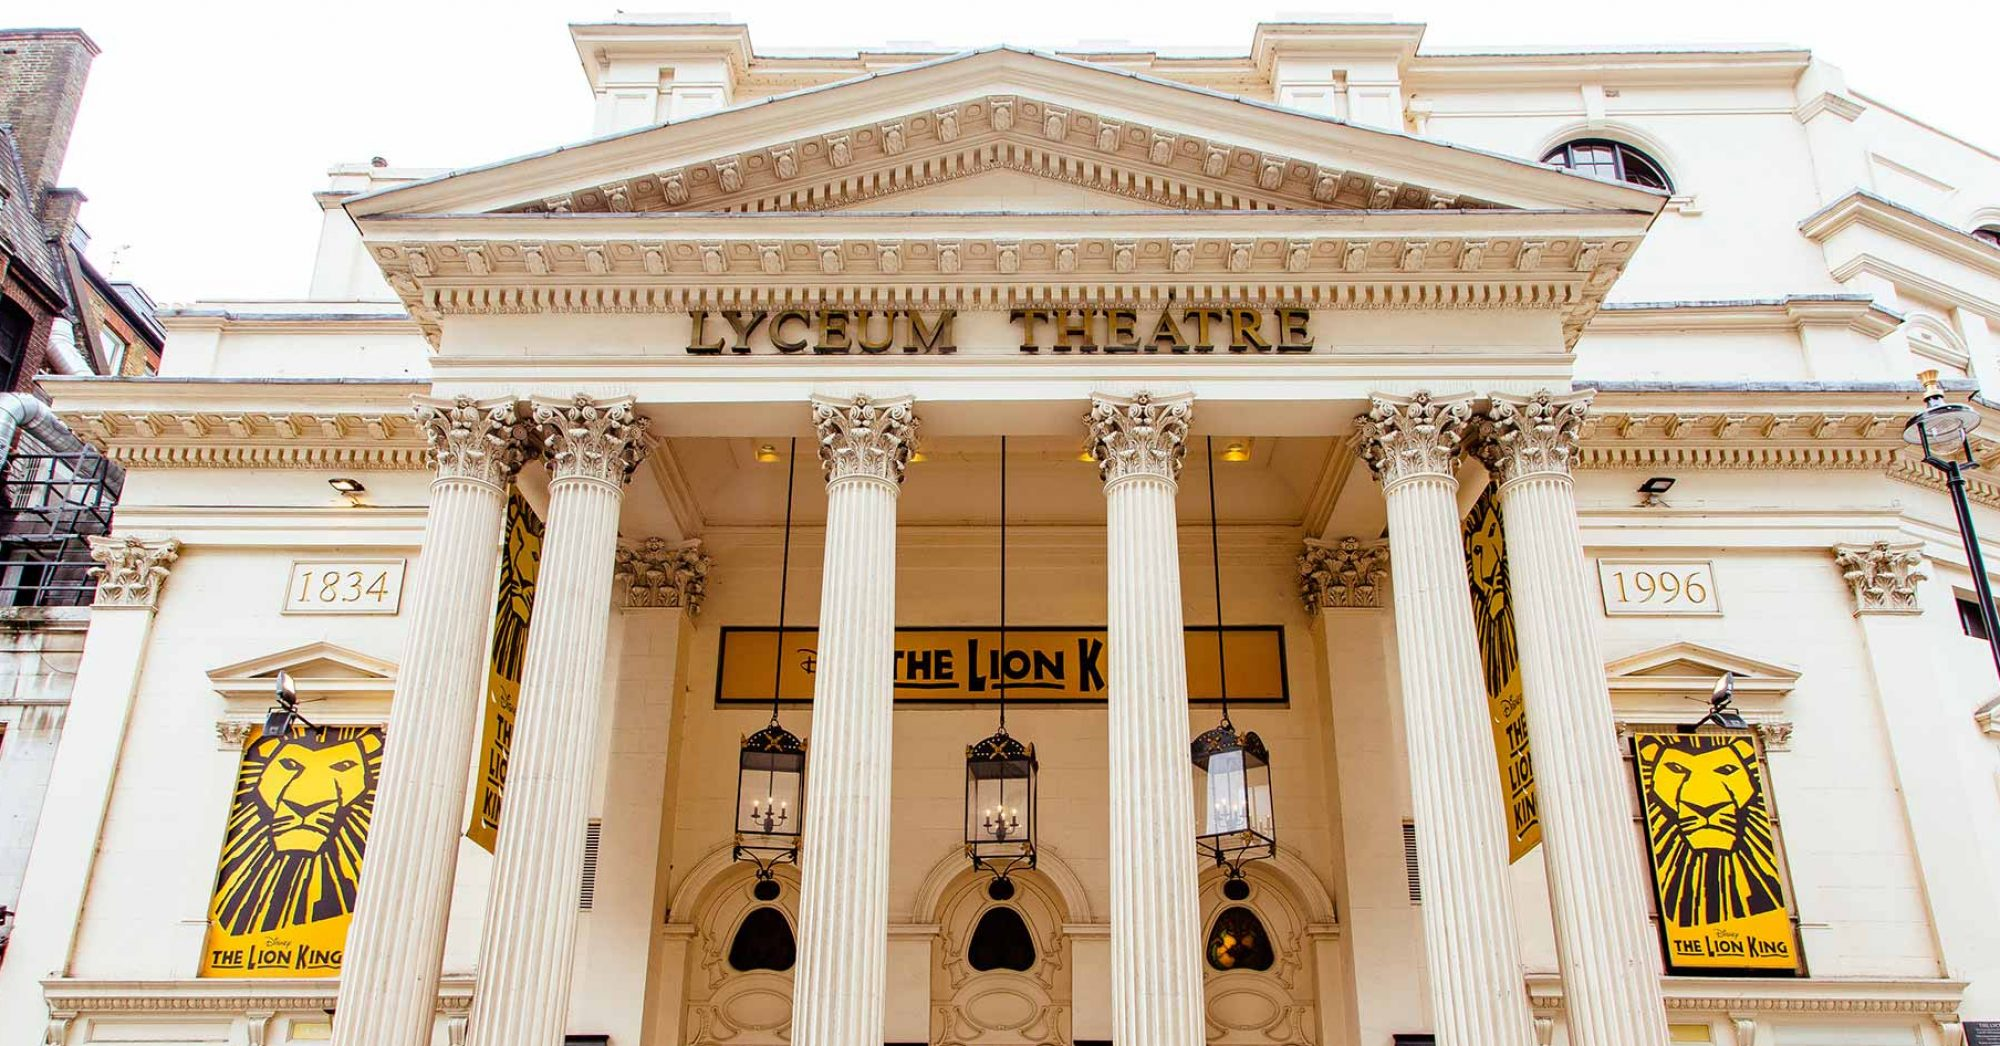 Lyceum Theatre Tickets London